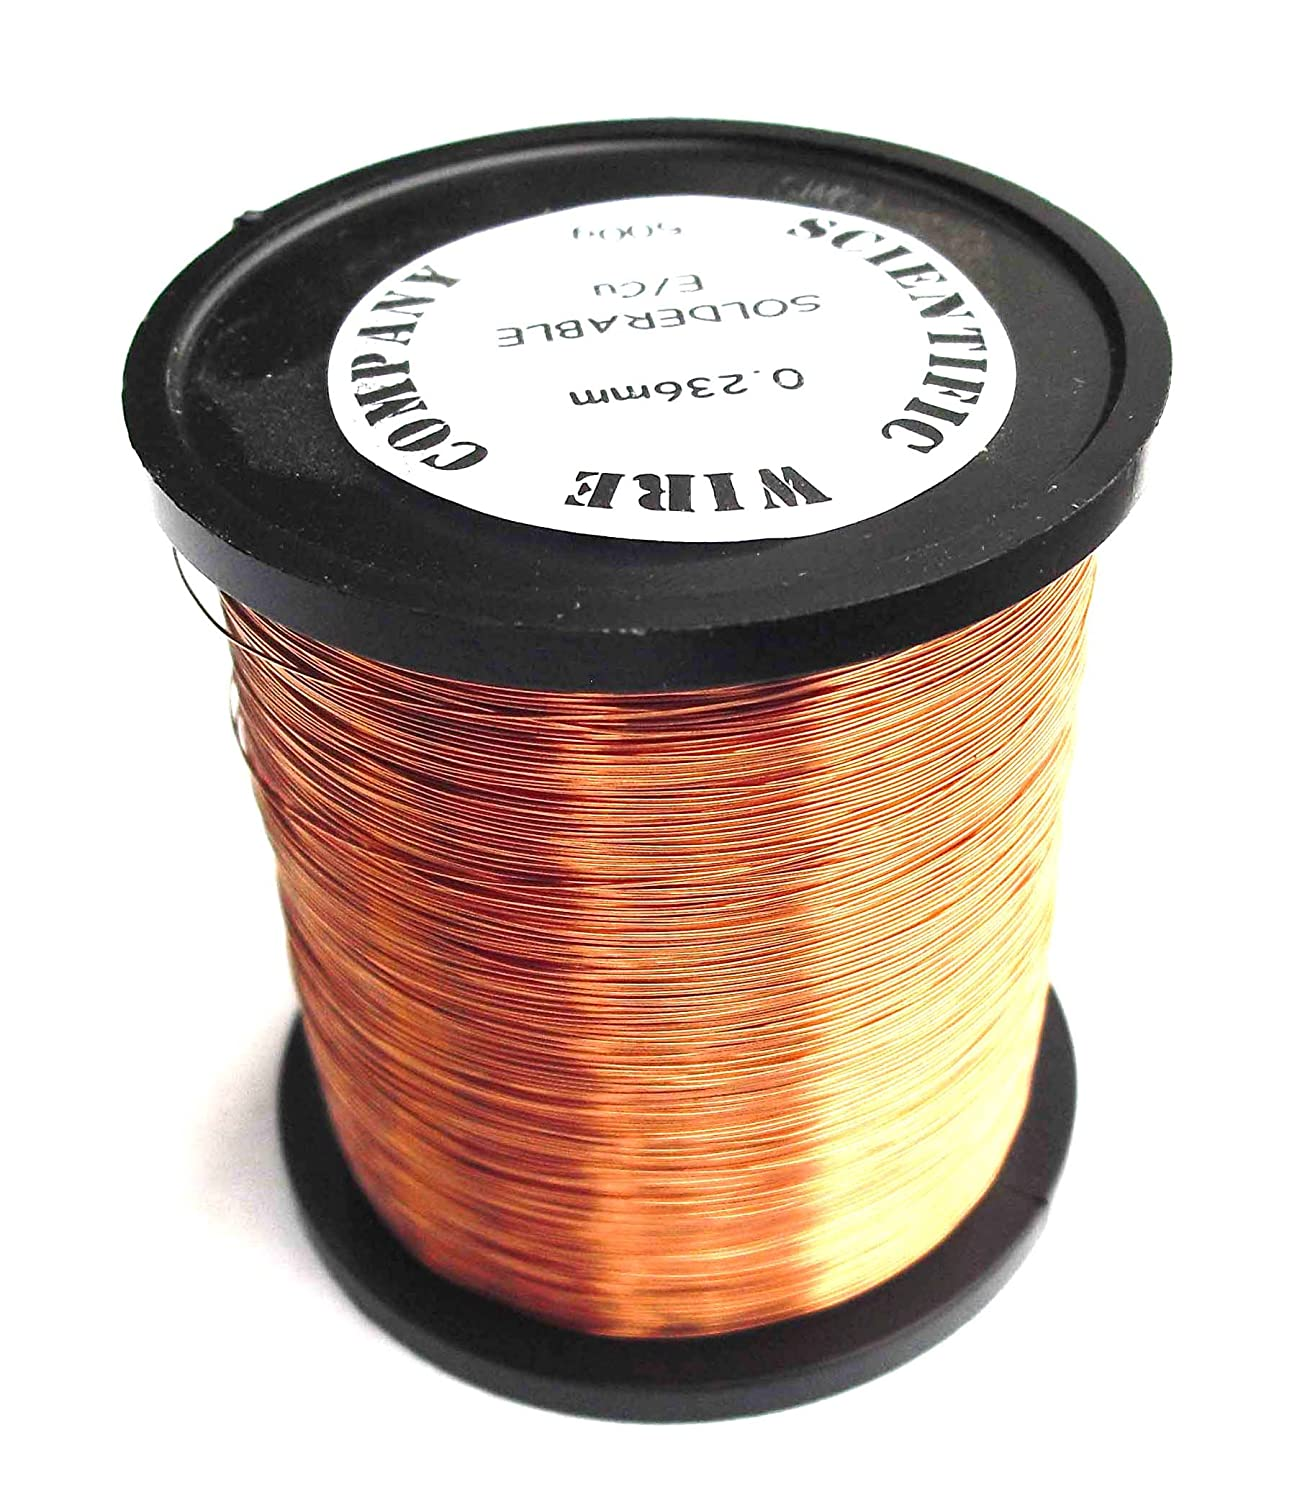 emailliert Kupfer spinndrahtes 0, 25 mm 33 SWG 30 AWG 500 Gramm lö tbar SCIENTIFIC WIRE COMPANY